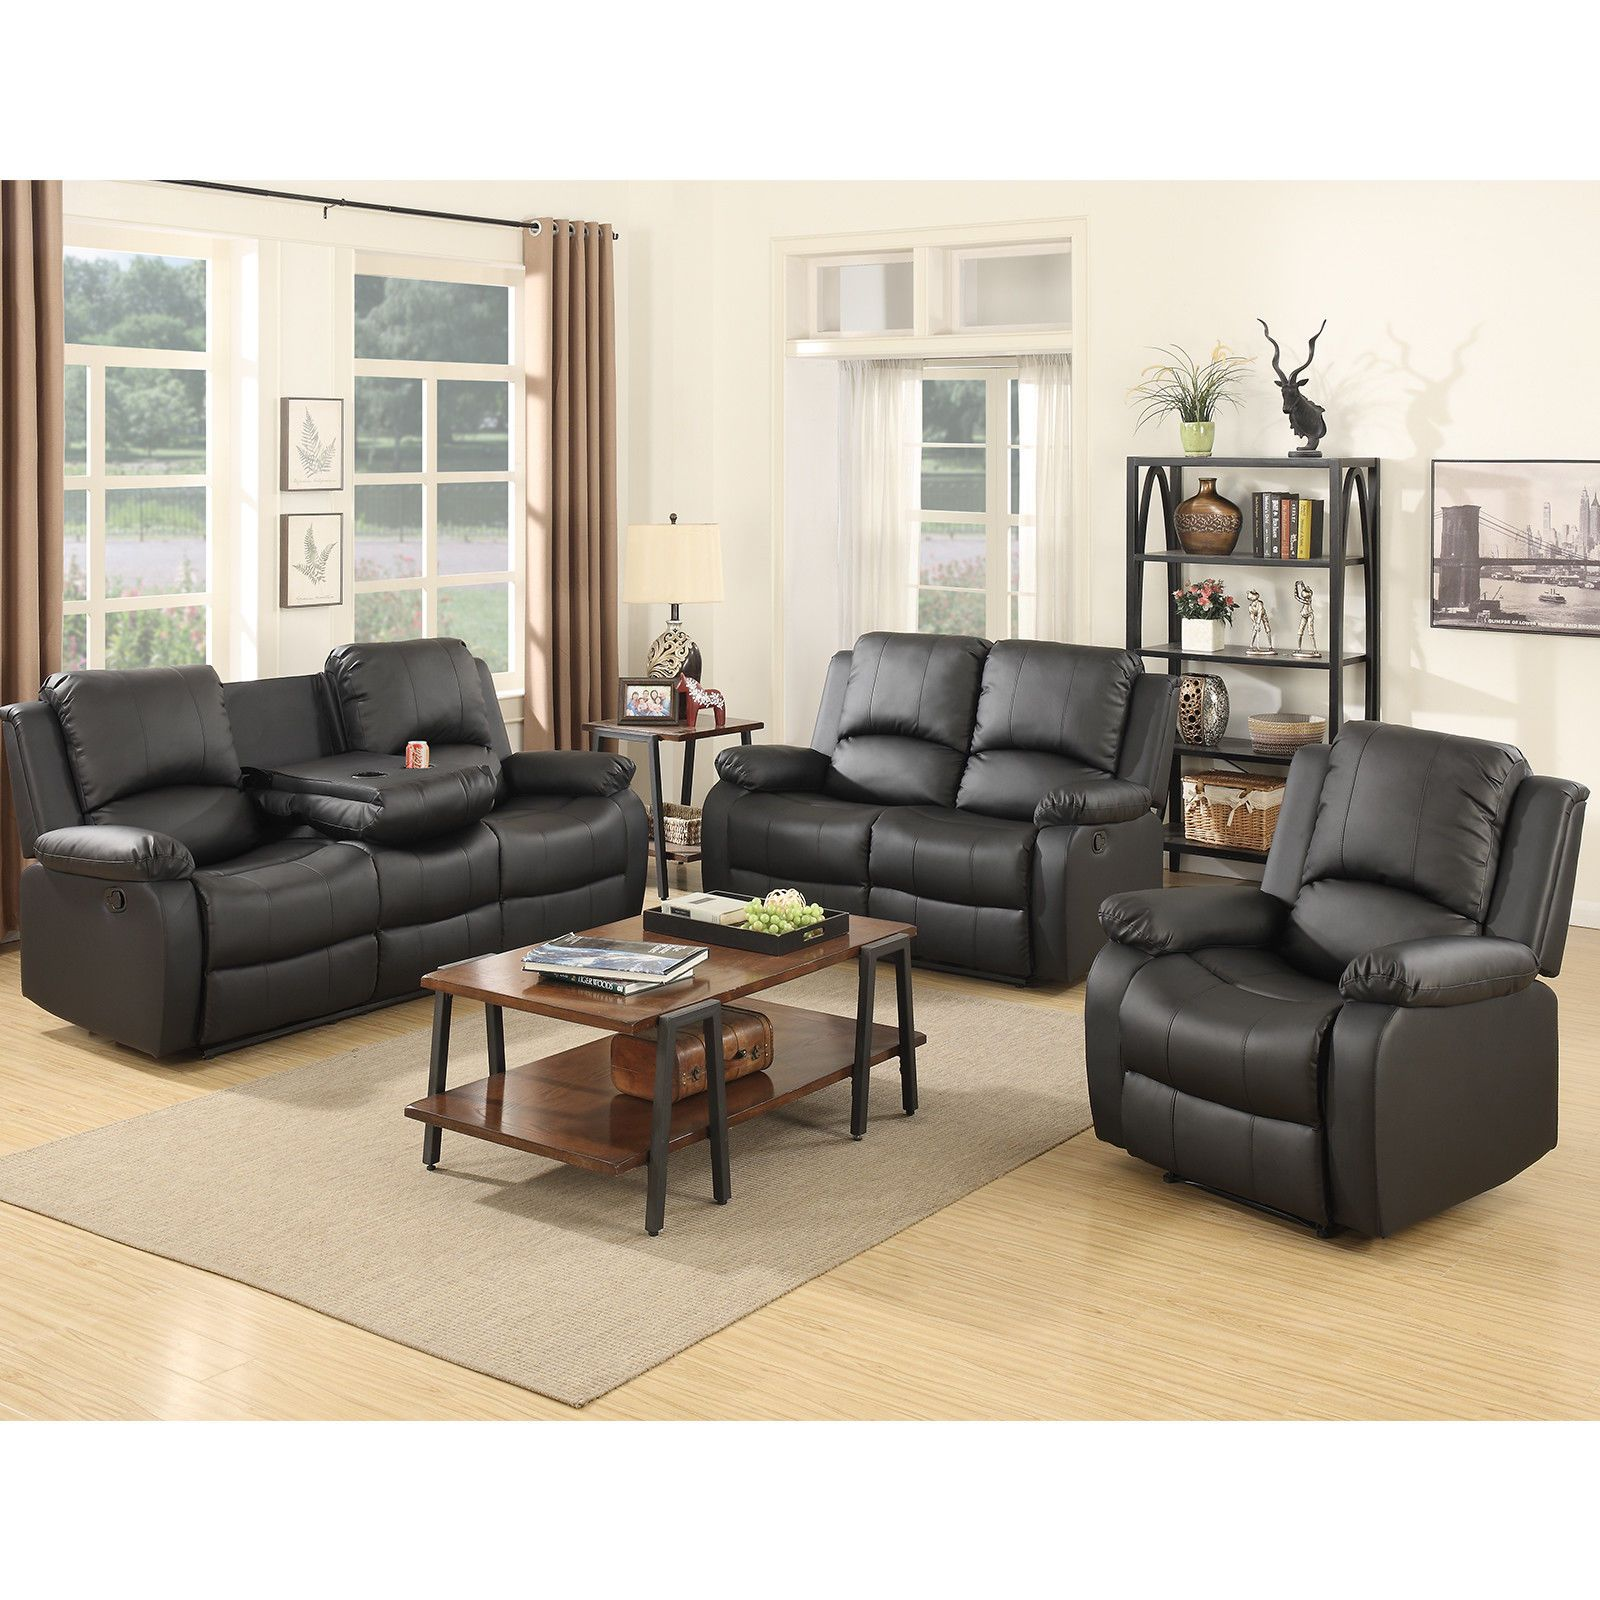 1049 90 Leather 3 2 1 Seater Recliner Sofa Set Loveseat Couch Chaise Chair W Cup Holder Living Room Sets Furniture Living Room Leather Couch And Loveseat